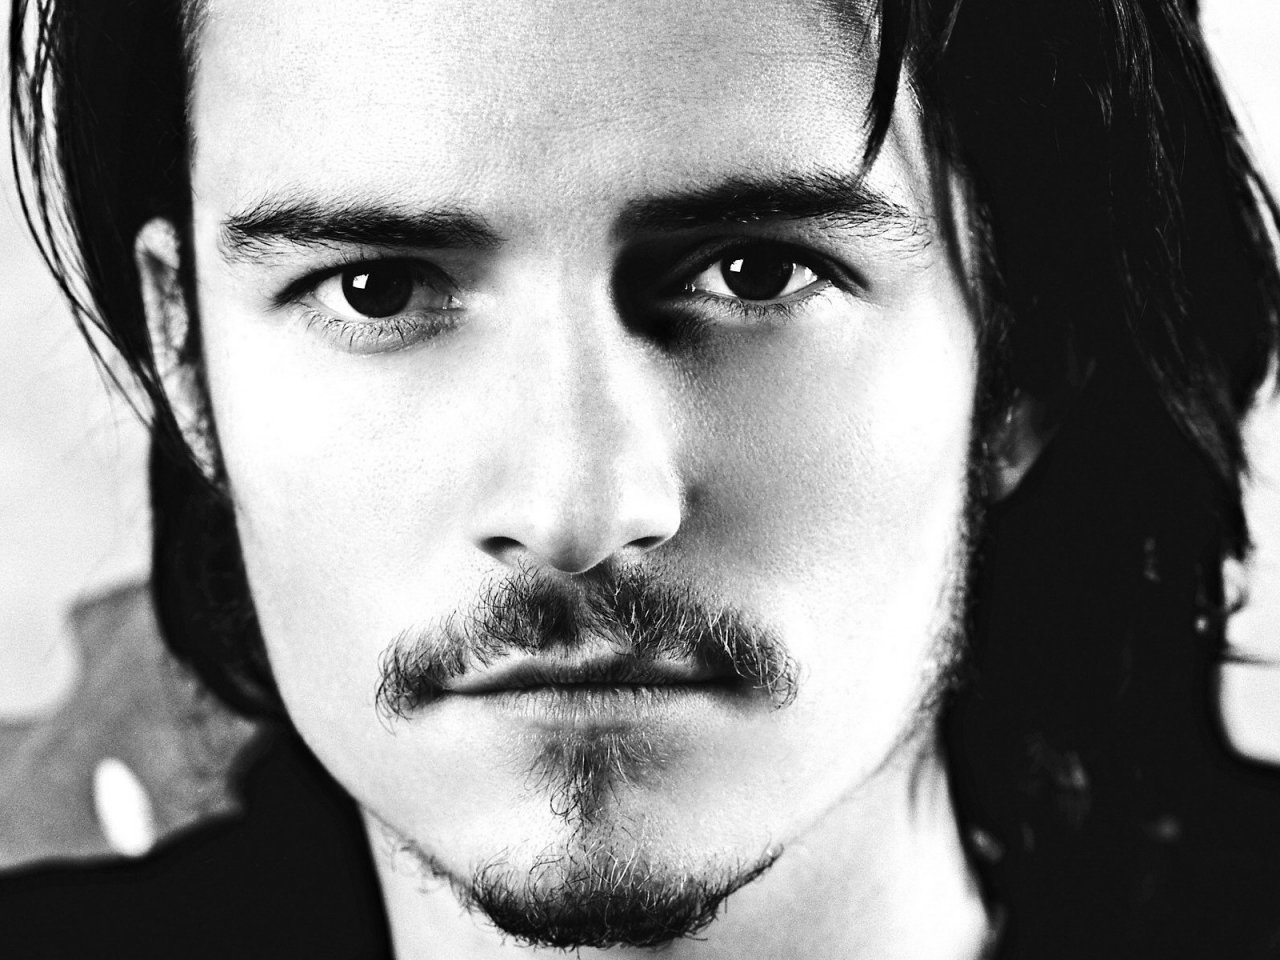 John Bloom (actor) Wallpapers tages orlando bloom hollywood actor orlando bloom the pirate of the